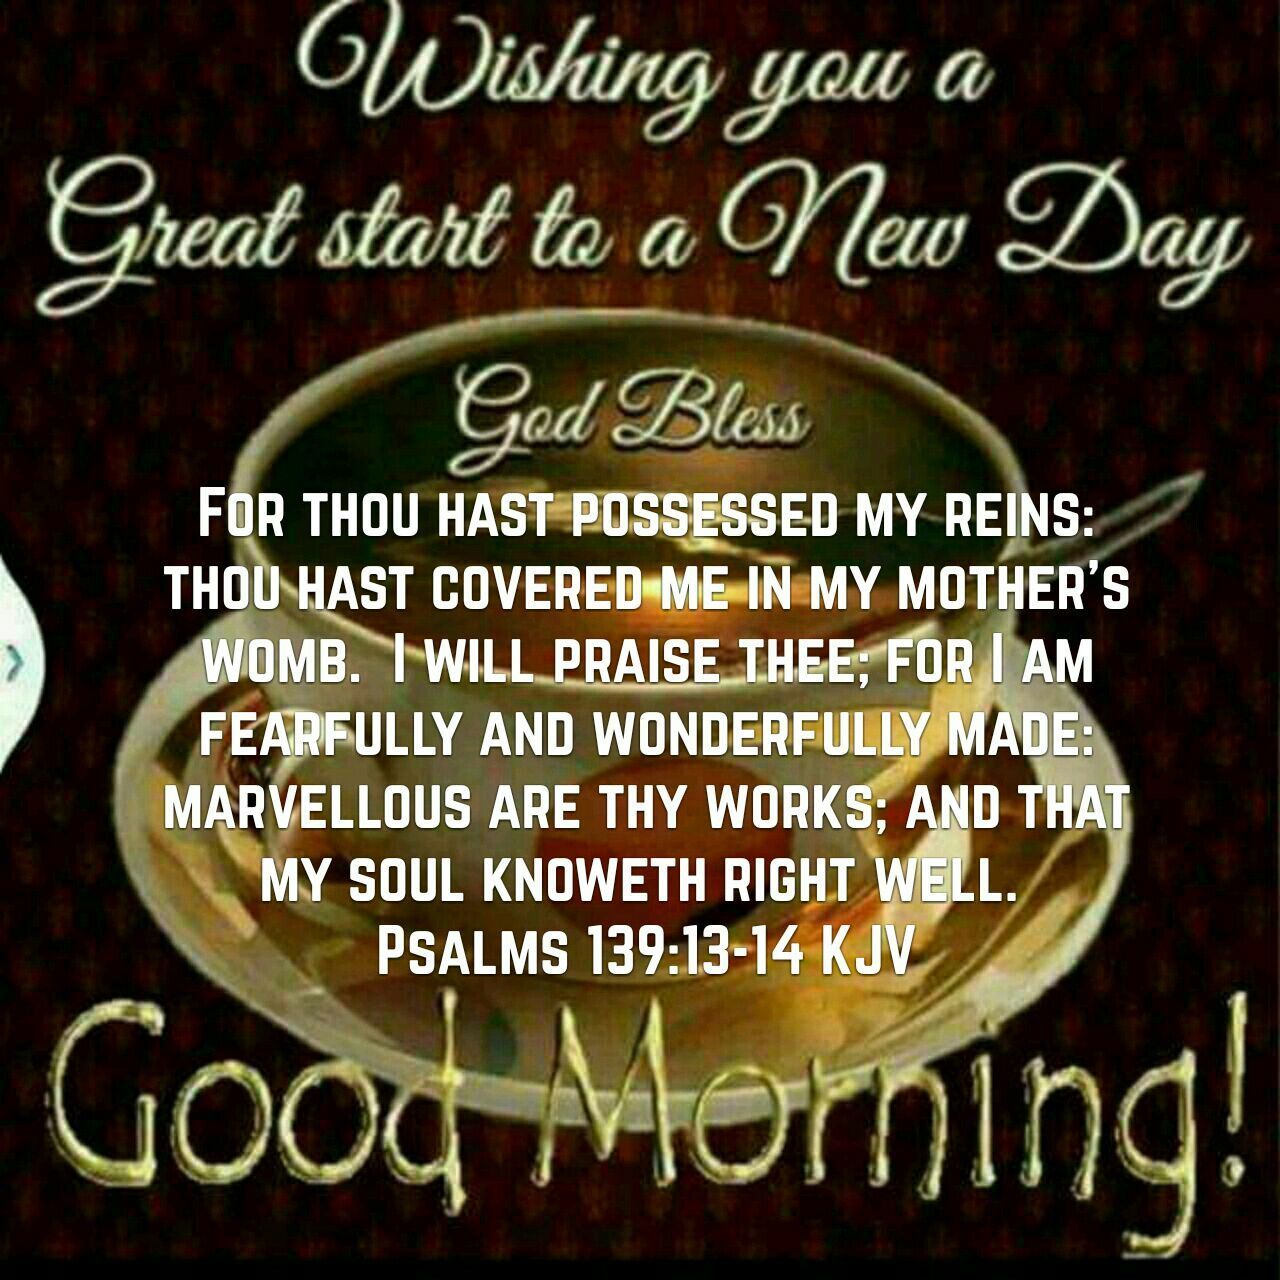 Fancy Daily Bible Morning Good Christian Blessings Pin By Claudia London On Praise Pinterest Morning Prayers Bible Verses About Blessings Prosperity Favor Bible Verses About Blessings